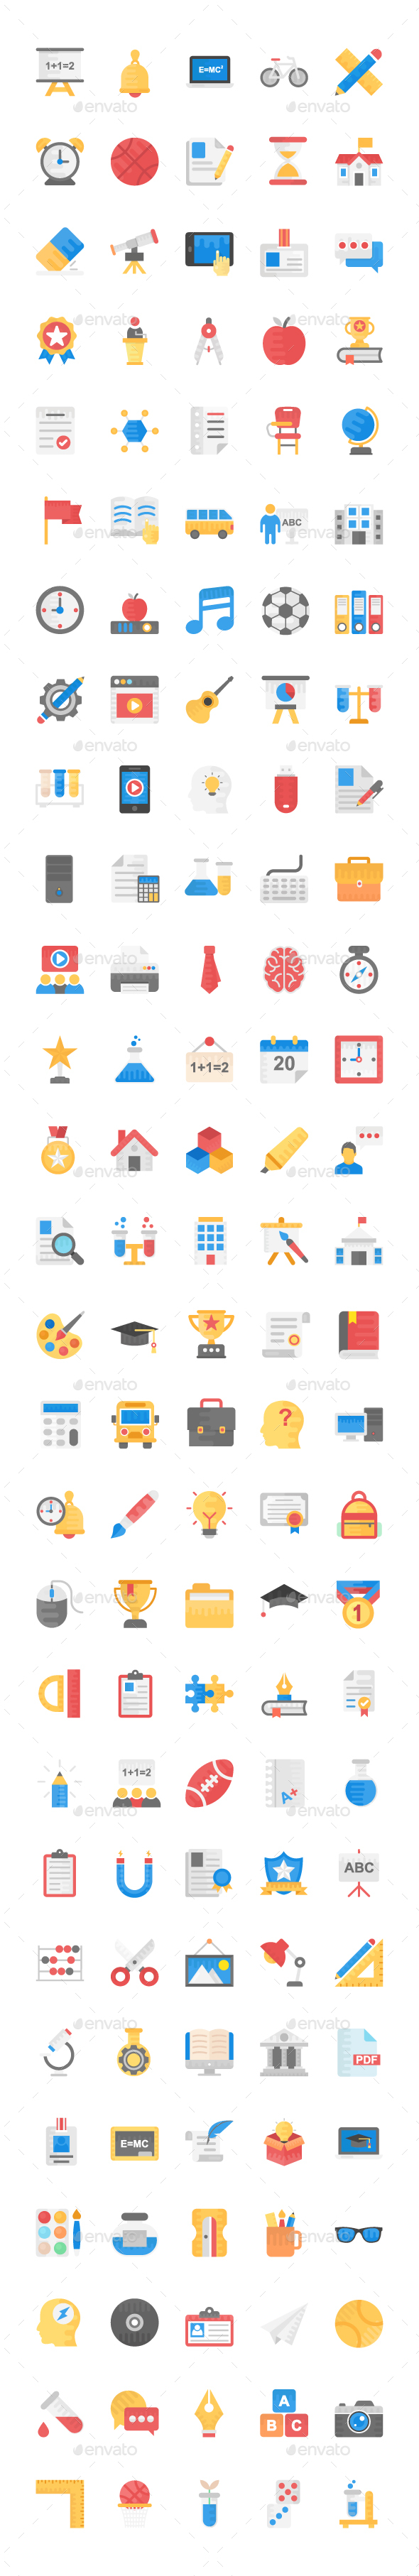 140 Education and School Flat Icons - Icons